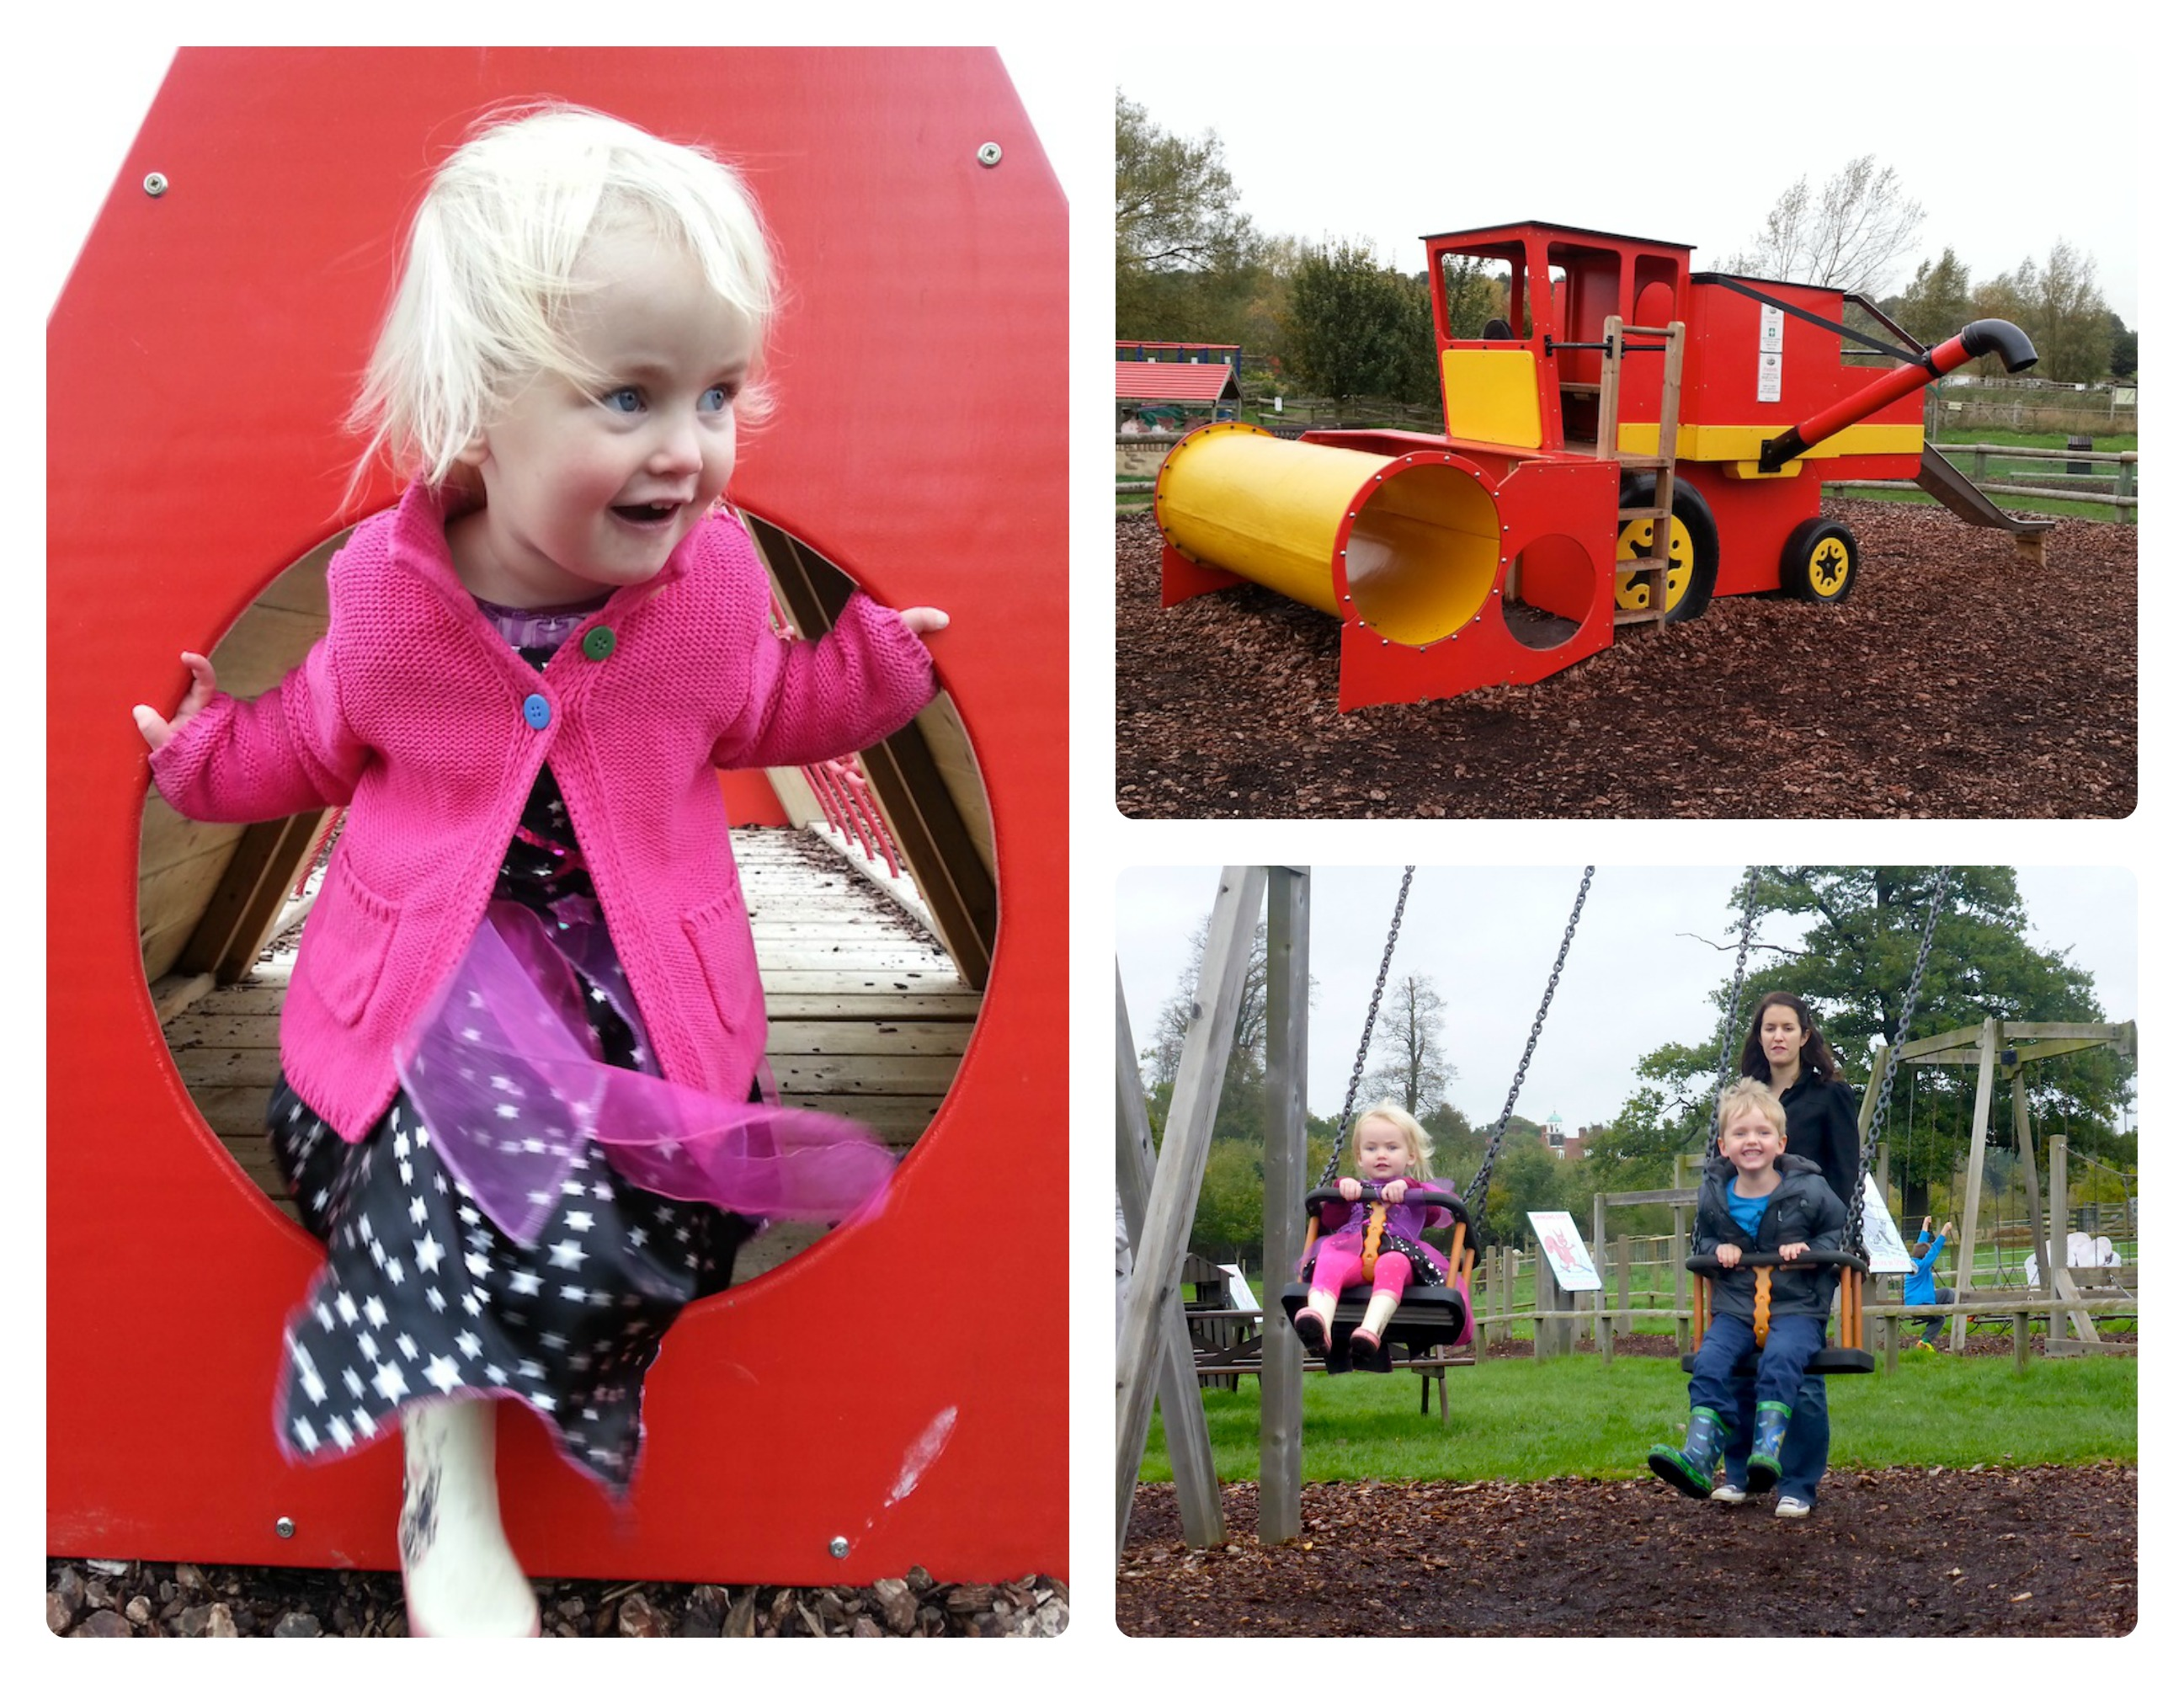 willows farm playgrounds